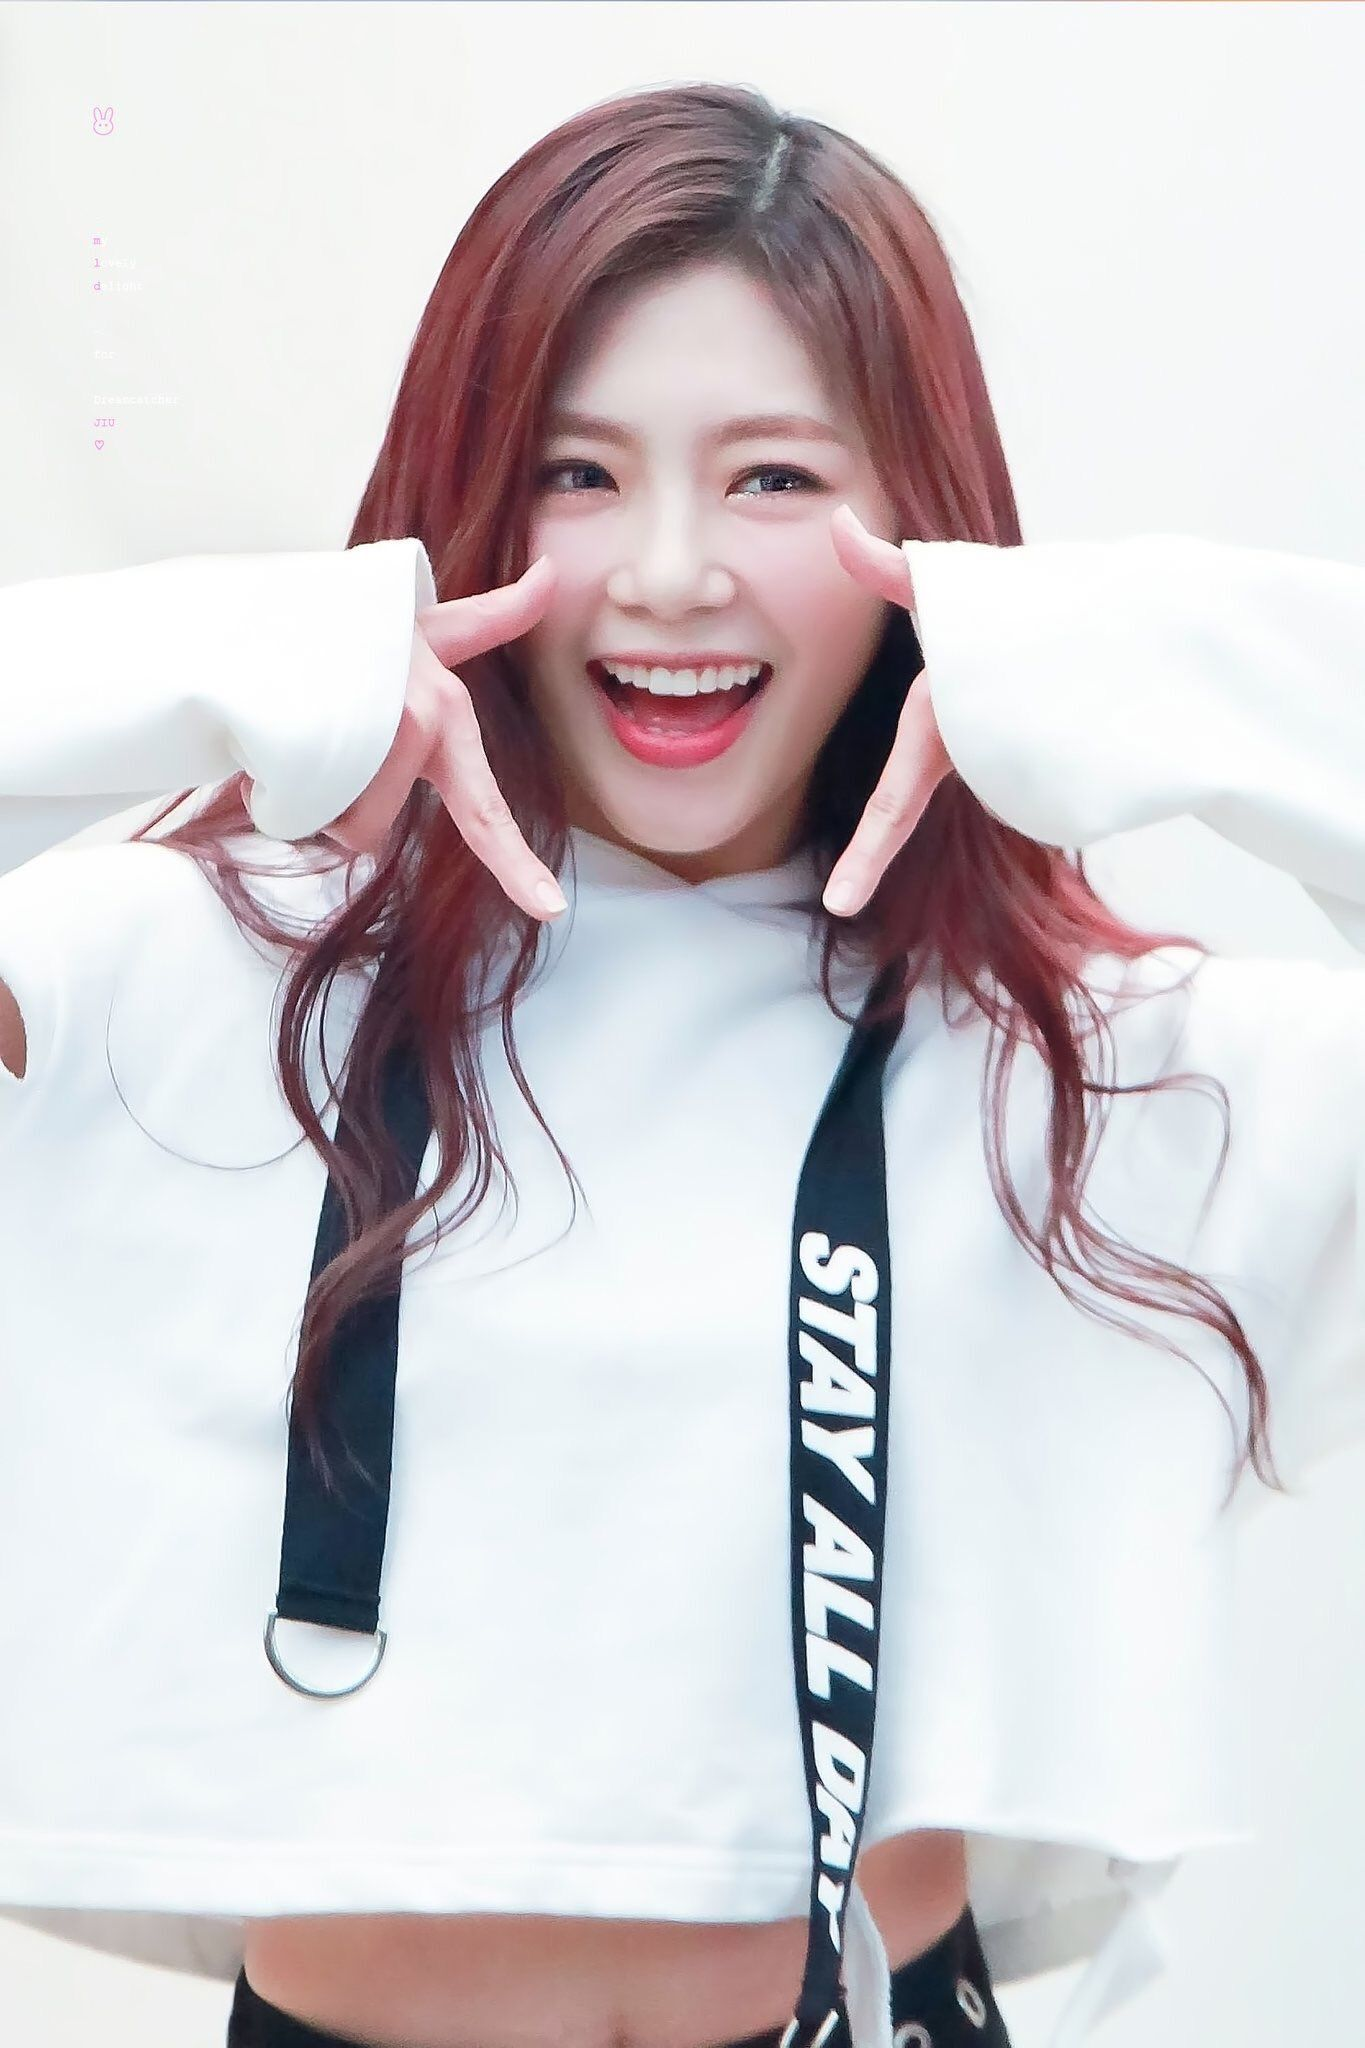 Dreamcatcher Jiu | Kpop | Pinterest | Dream catcher, Jiu ...